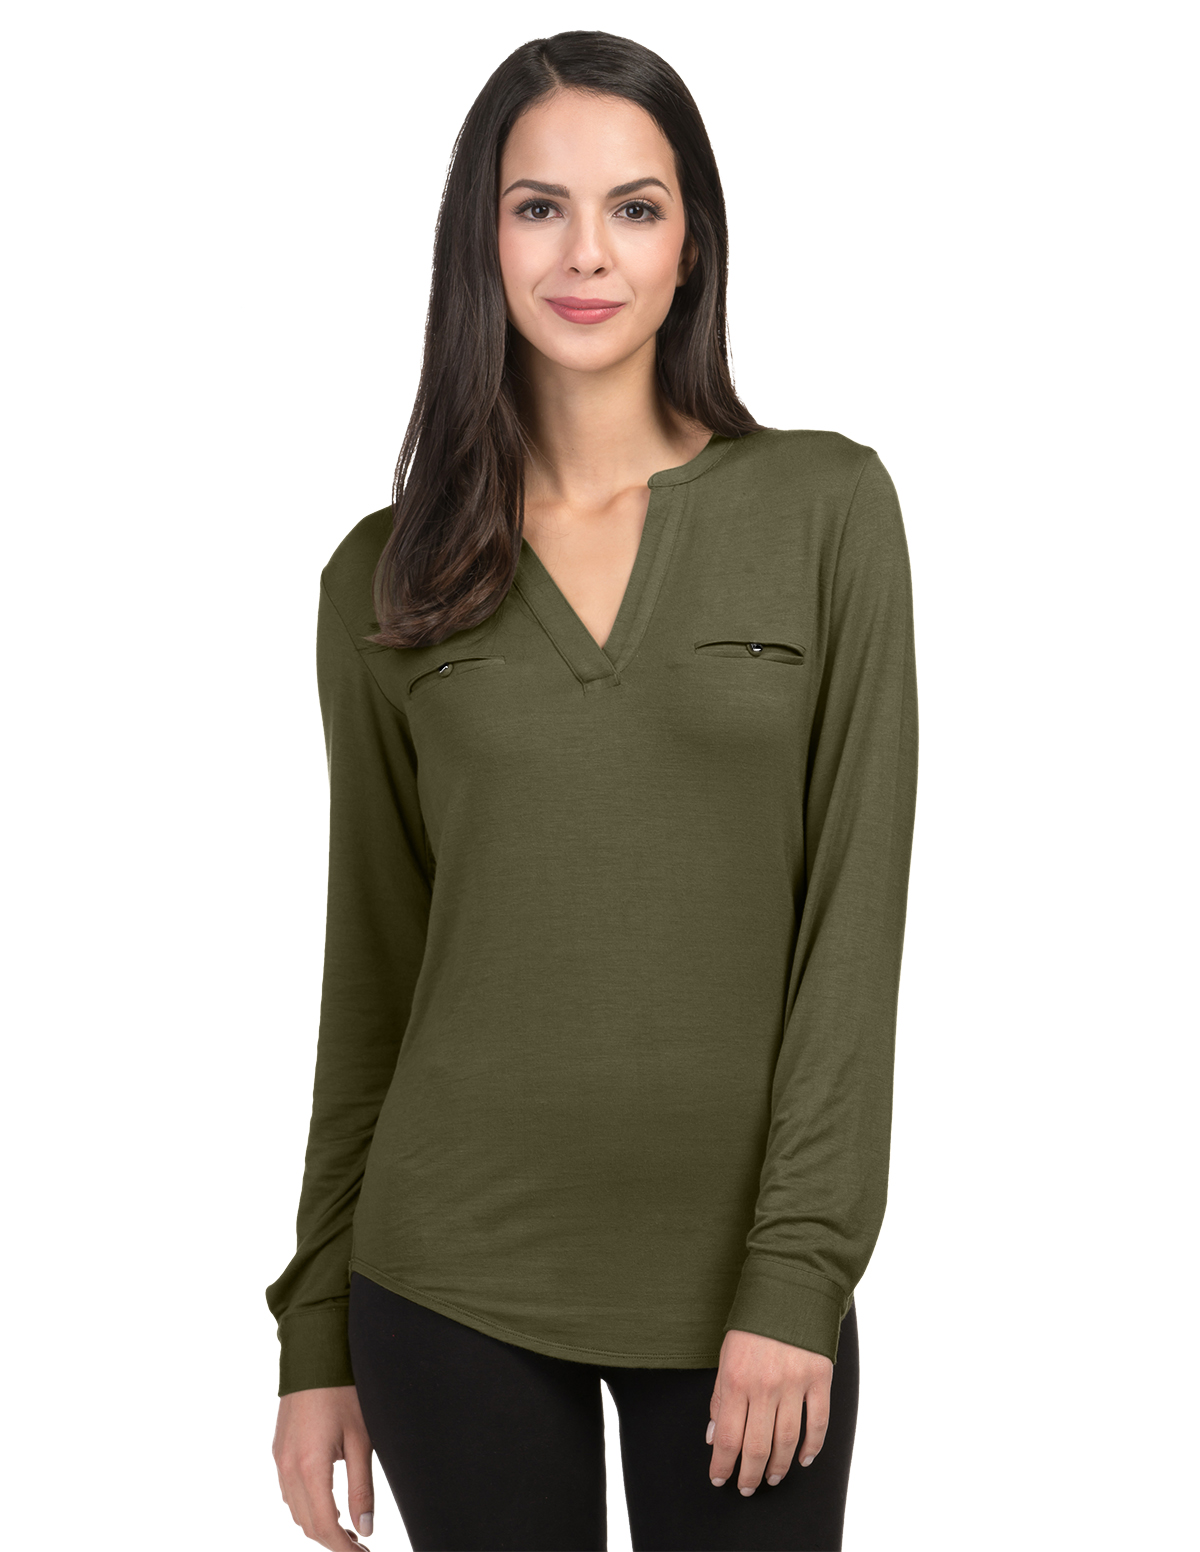 Alexandra Women's Spilt Neck Top $20